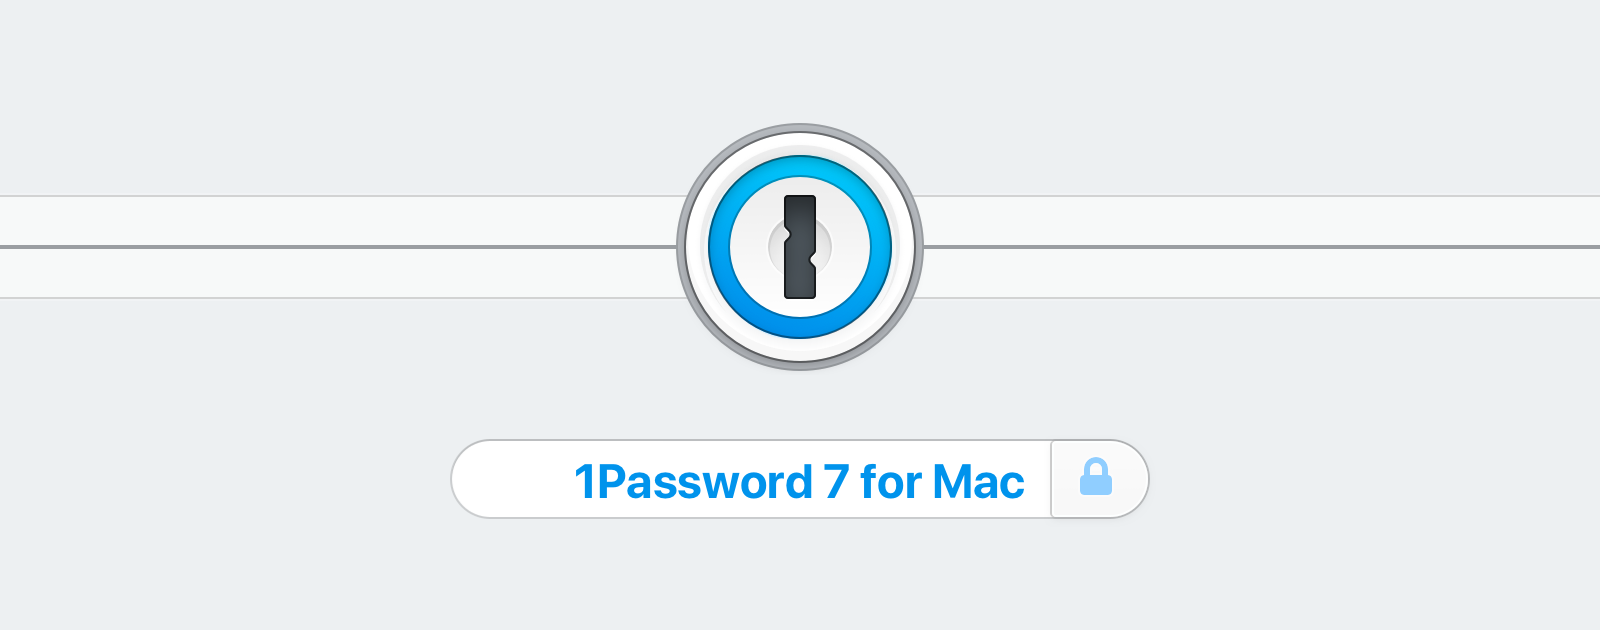 1Password 7 Launches Today, and Here's How to Download It - The Mac